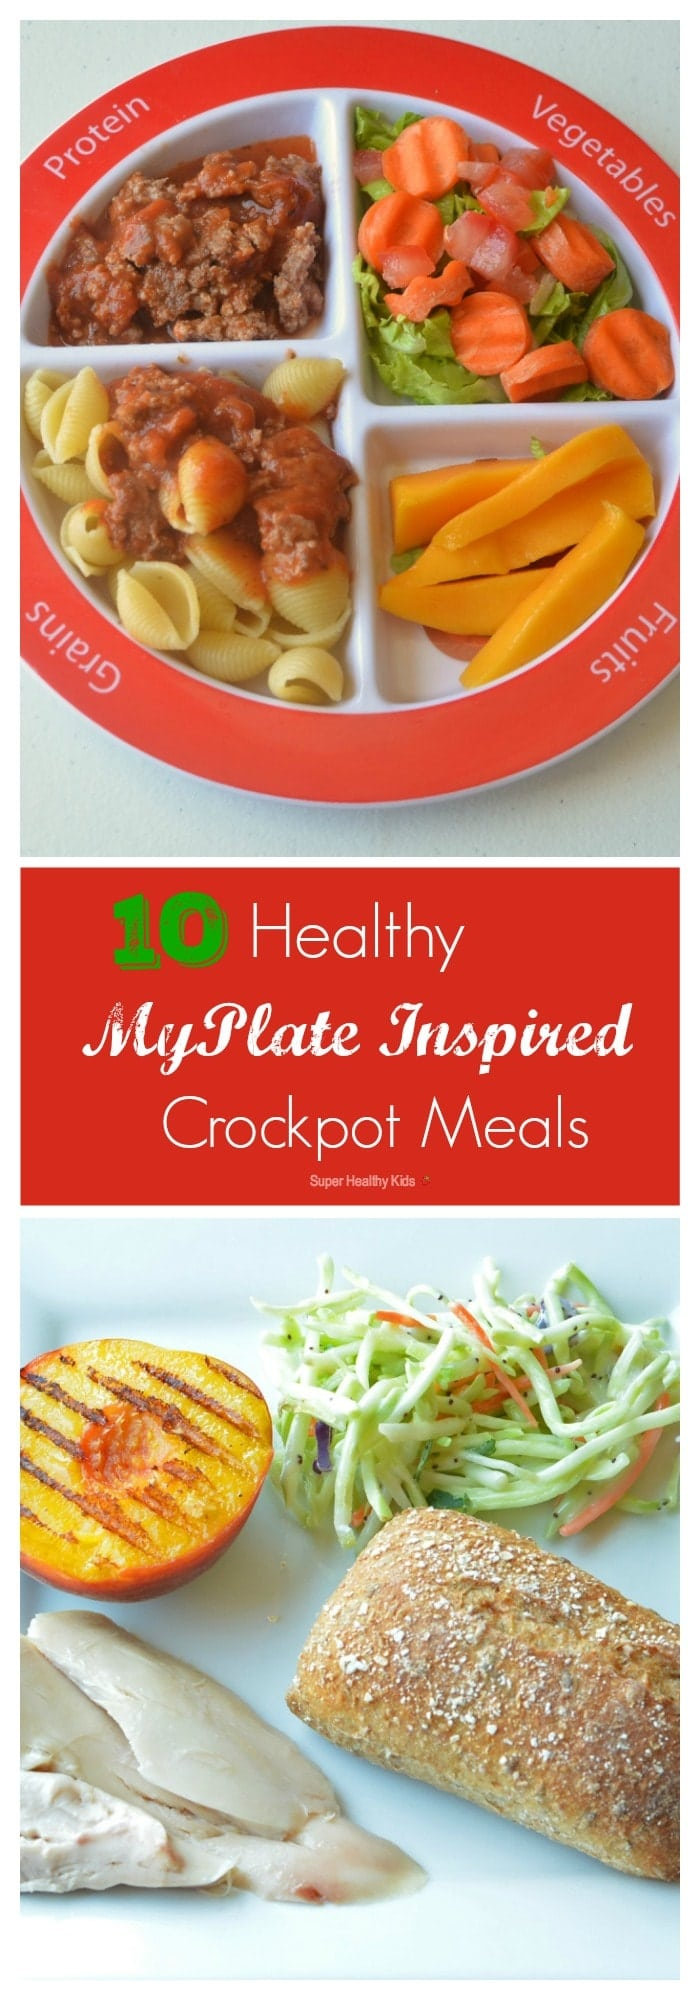 Top 10 Healthy MyPlate Inspired Crockpot Meals. Balanced meals, in a crockpot! https://www.superhealthykids.com/top-10-healthy-myplate-inspired-crockpot-meals/